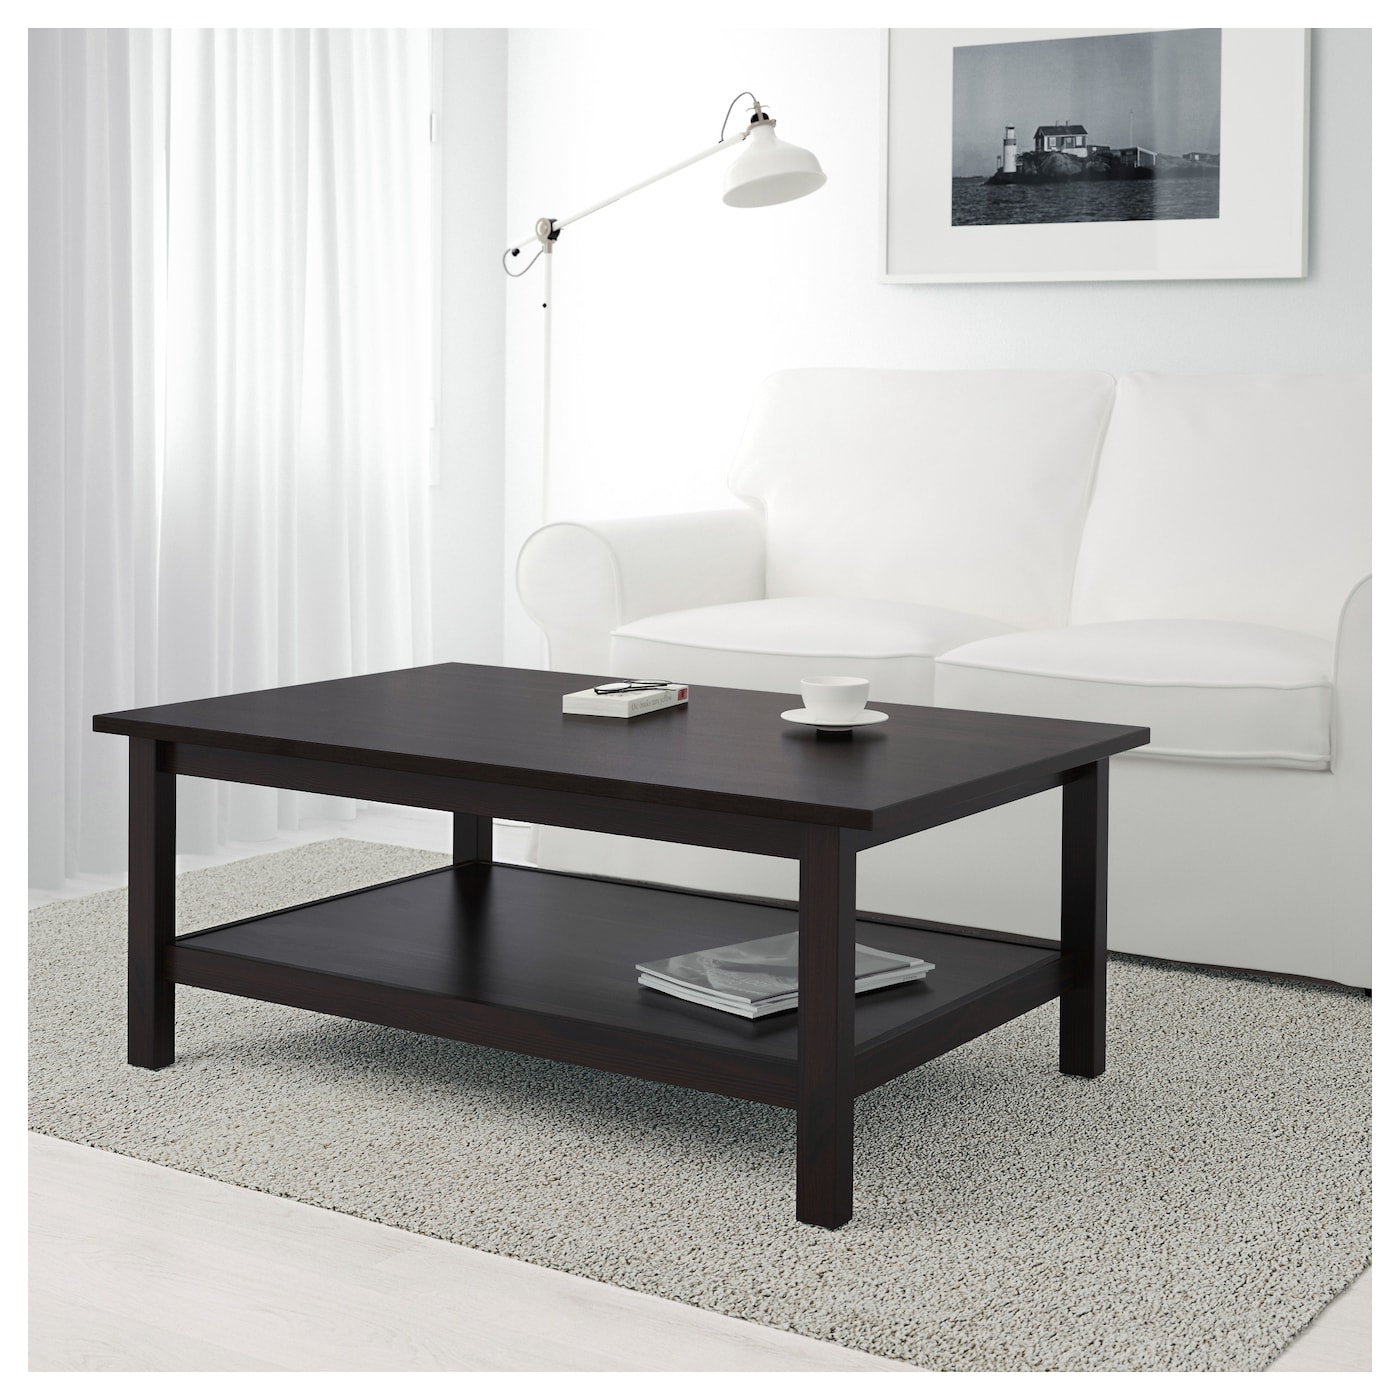 HEMNES Coffee Table Black-brown 118x75 Cm